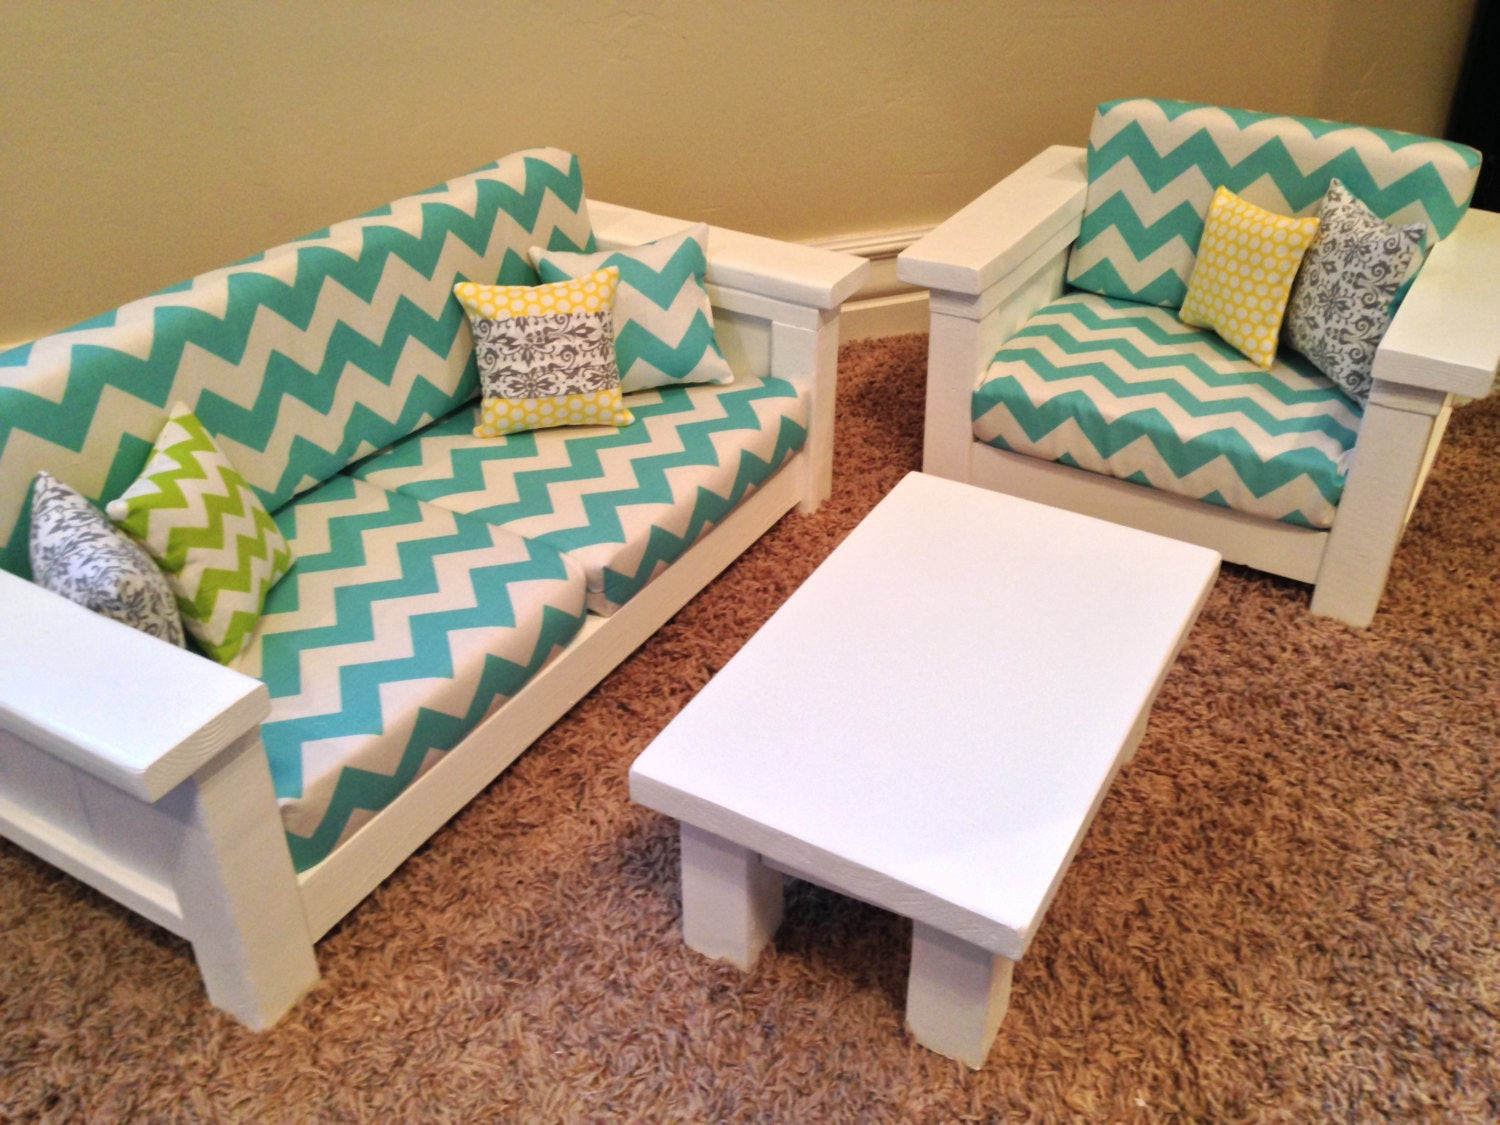 Best ideas about American Girl Doll Furniture DIY . Save or Pin American Girl Doll Furniture 18 doll size 3 pc by Now.